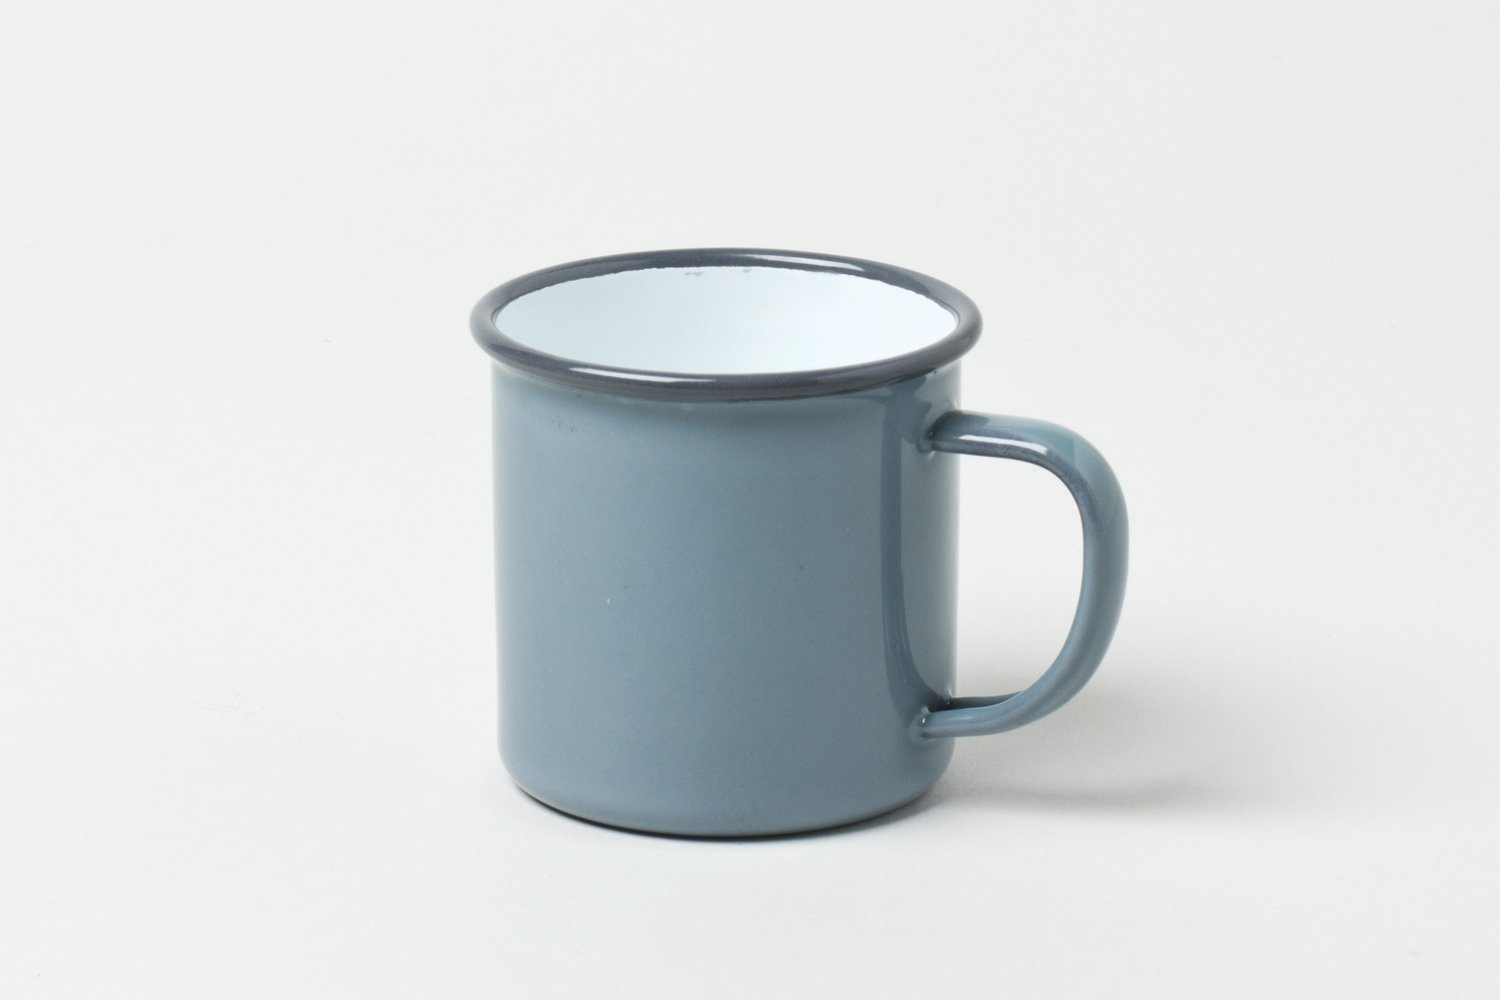 """This classic Falcon Enamelware Mug is safe for even your hottest cups of coffee and cocoa. Although it is extremely durable, the mug is not bulky. The expertly crafted enamelware is thin, and the simple handle appears delicate, while remaining stable and strong.  Search """"jansen co my mug espresso saucer"""" from Get Ready for Fall with 8 of Our Favorite Designs"""